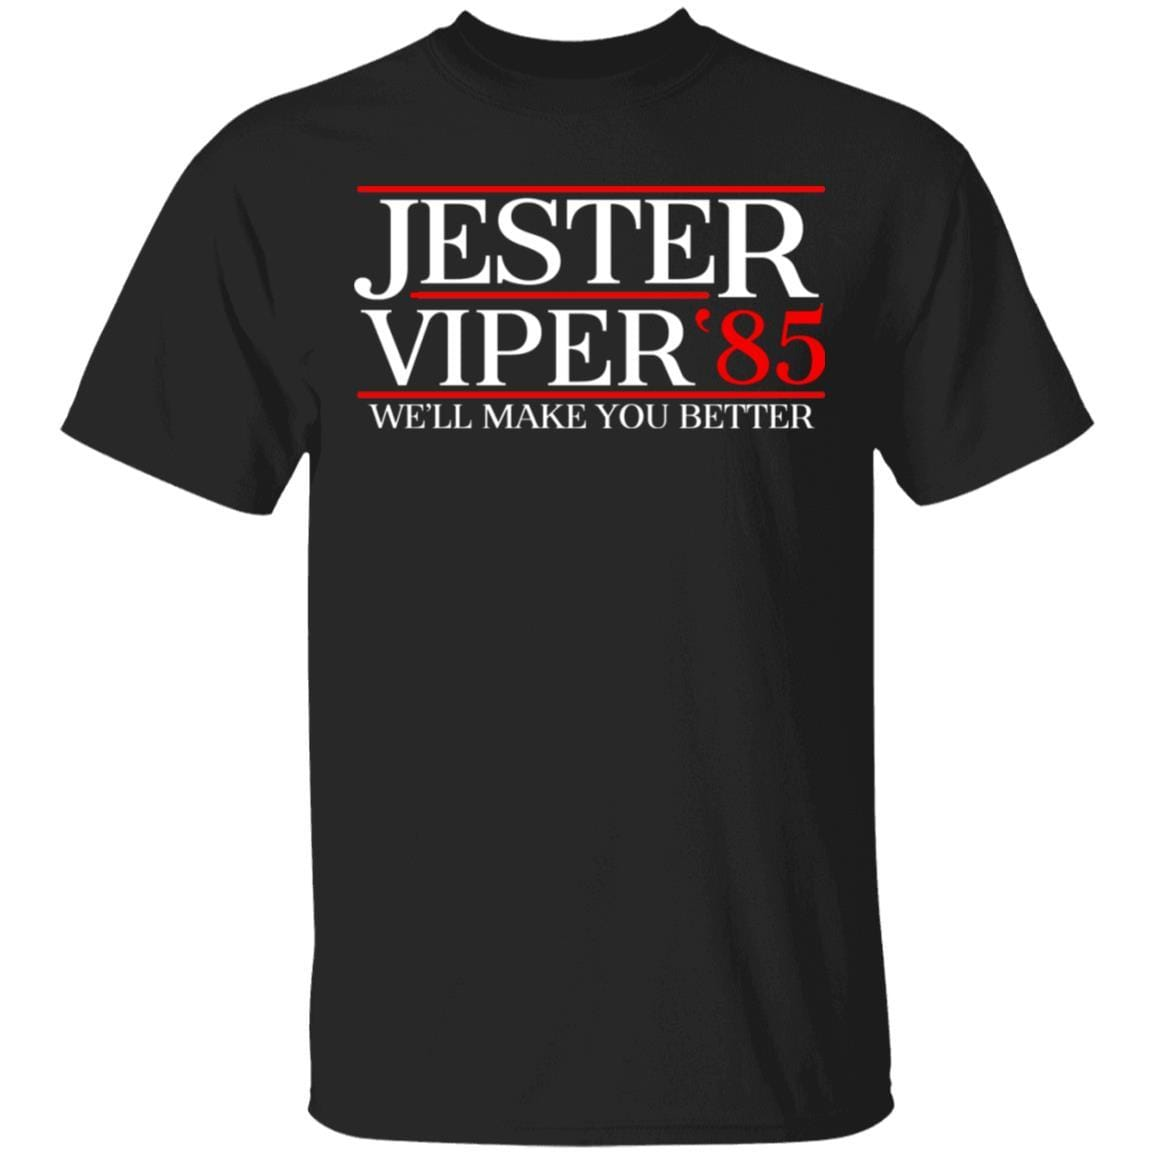 Danger Zone Jester Viper 85' We'll Make You Better T-Shirts, Hoodies 1049-9953-92229577-48144 - Tee Ript